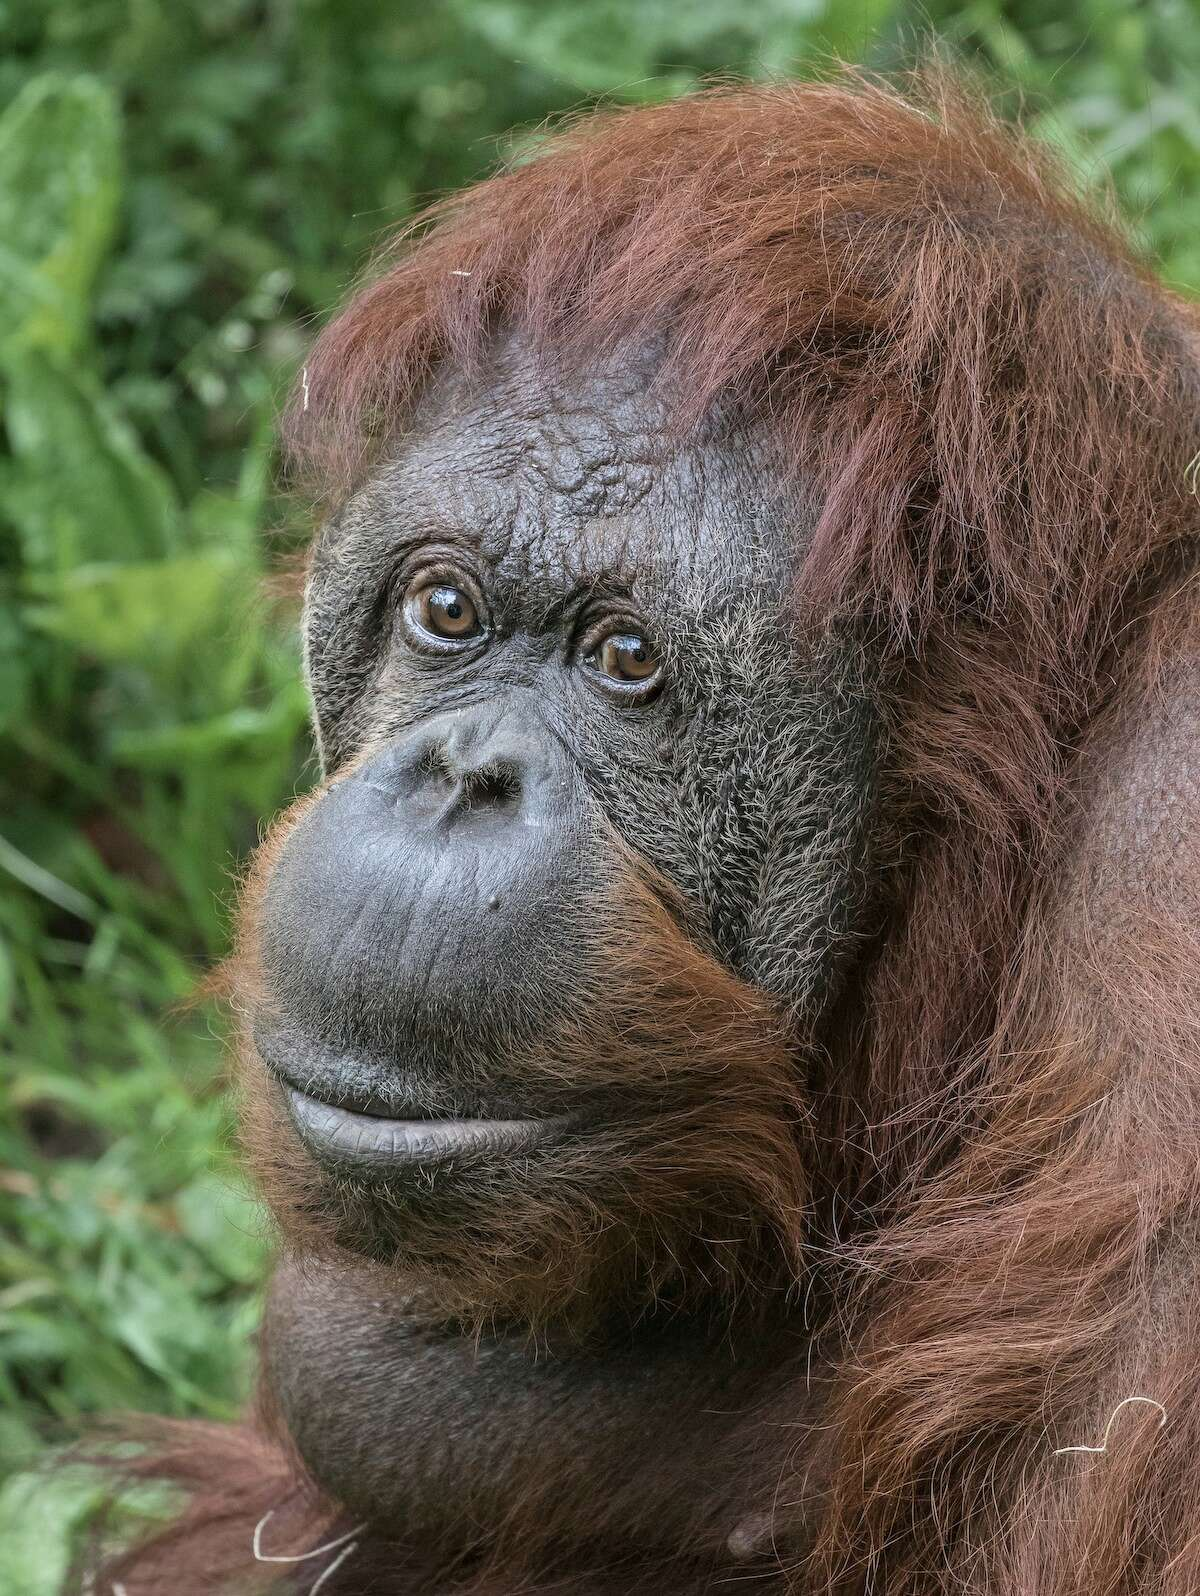 Chinta, a female orangutan at Woodland Park Zoo, peacefully passed away Feb. 18, one day shy of her 52nd birthday. The beloved orangutan is the last remaining animal born at the zoo in the 1960s.